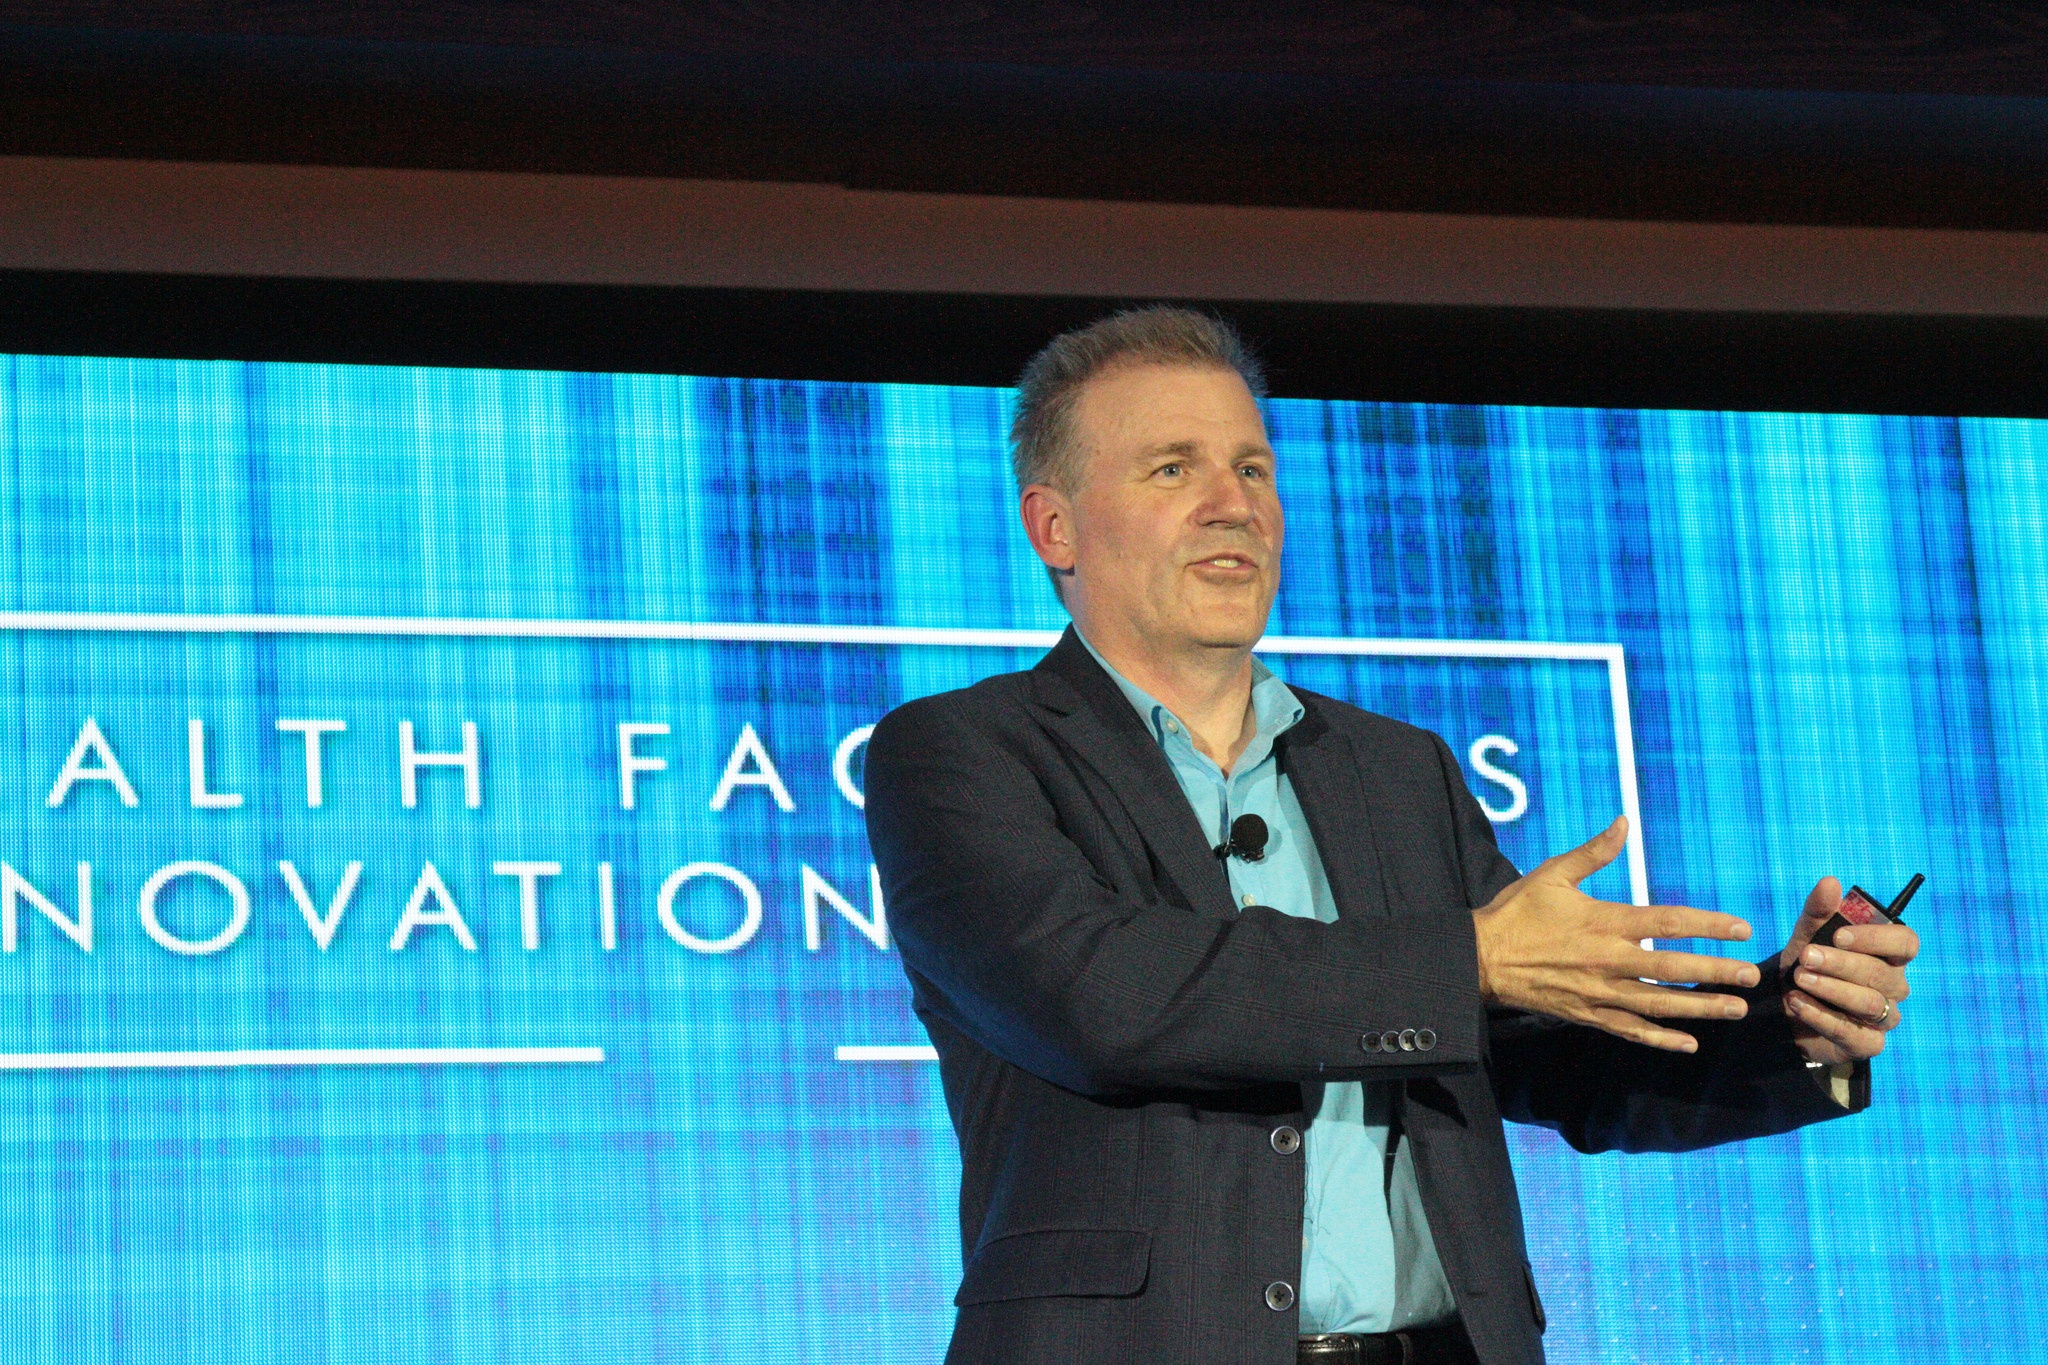 Healthcare's Top Facilities Leaders Come Together to Speak Innovation